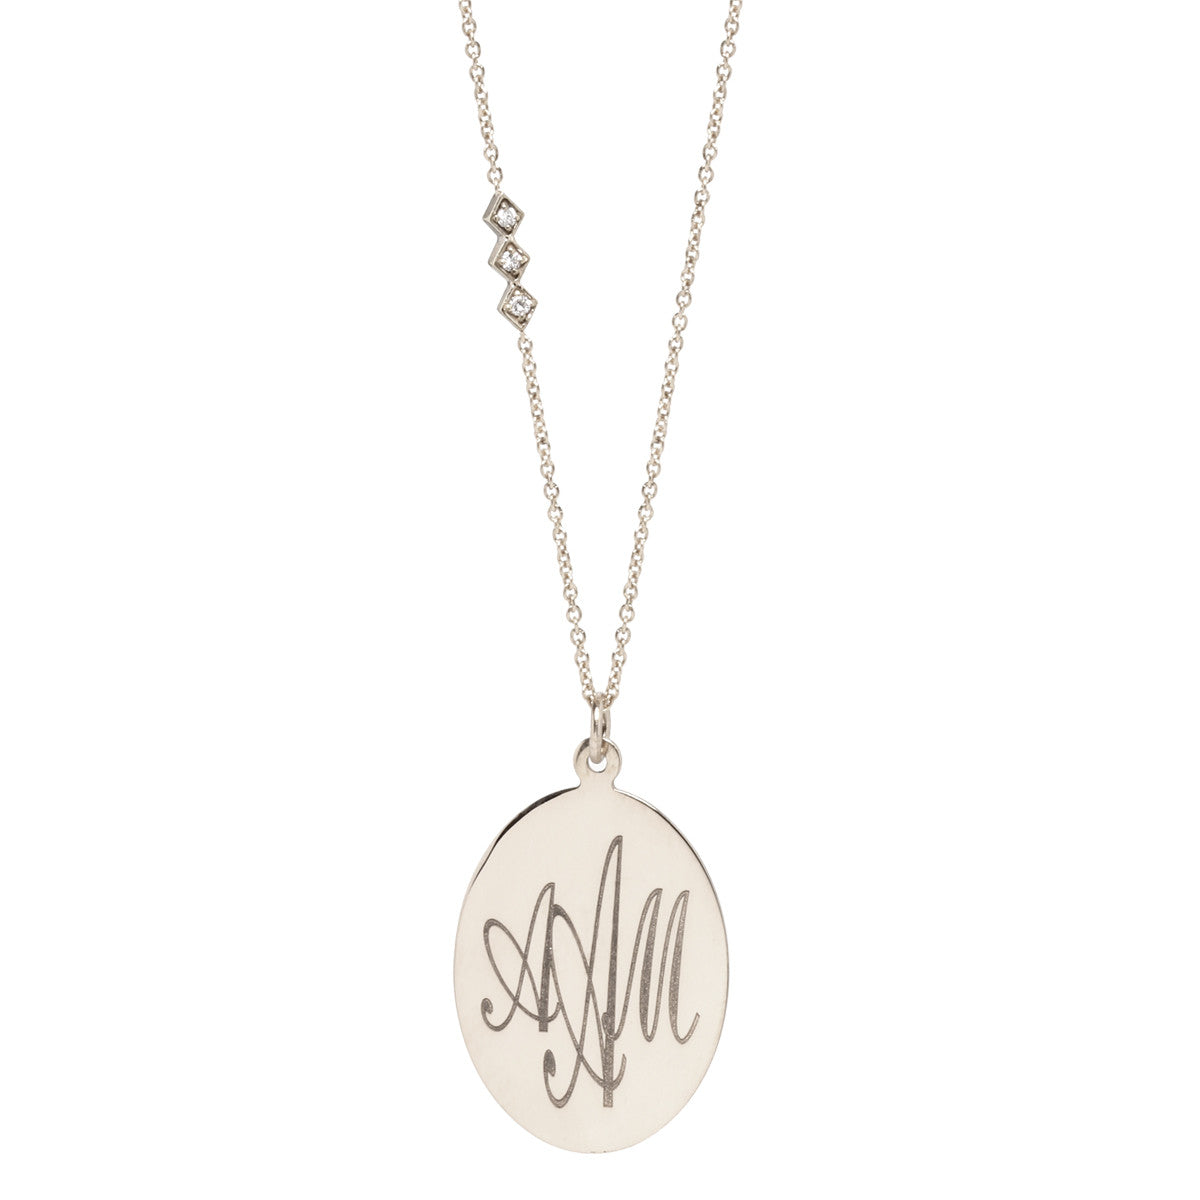 Zo Chicco Zo Chicco 14kt Gold Disc Monogram Necklace